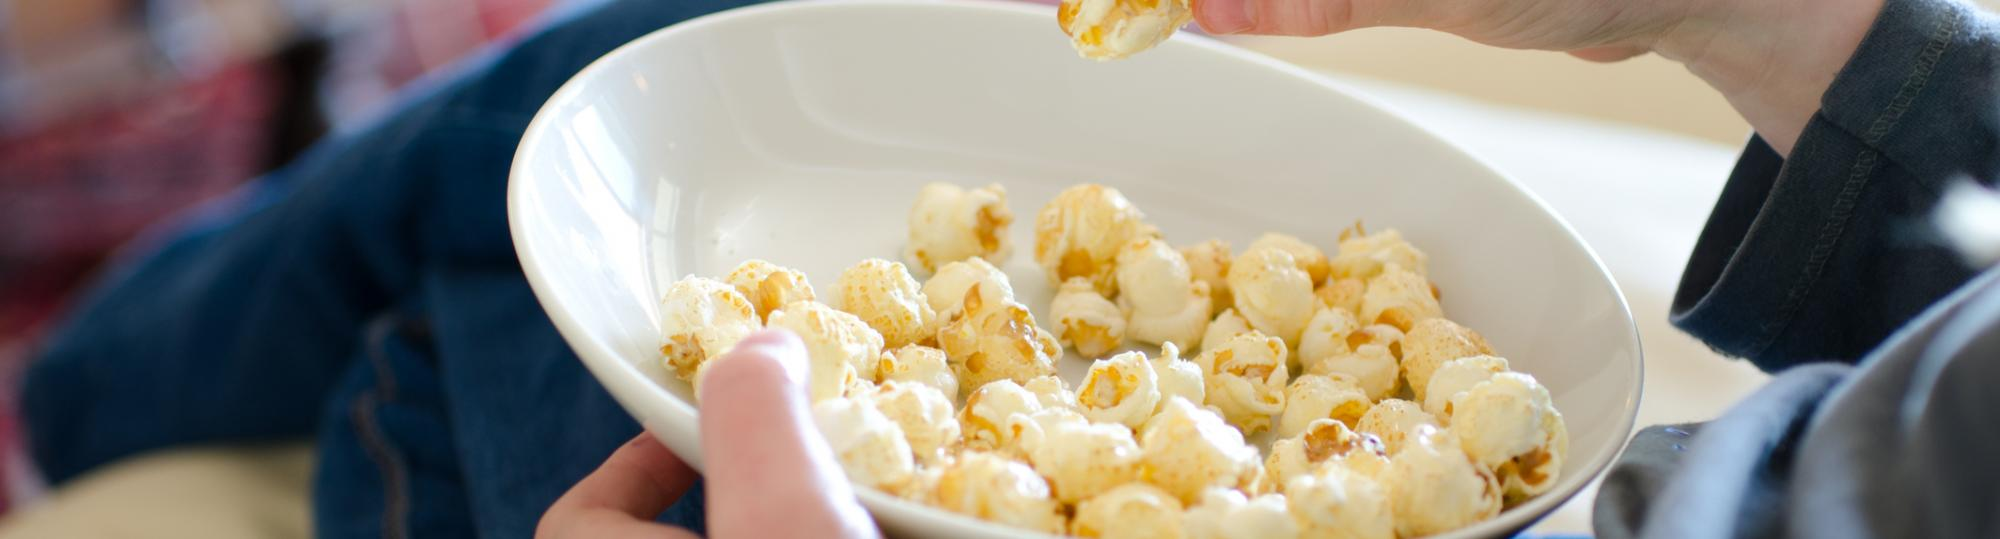 The Popcorn Factory Military Discount with Veterans Advantage